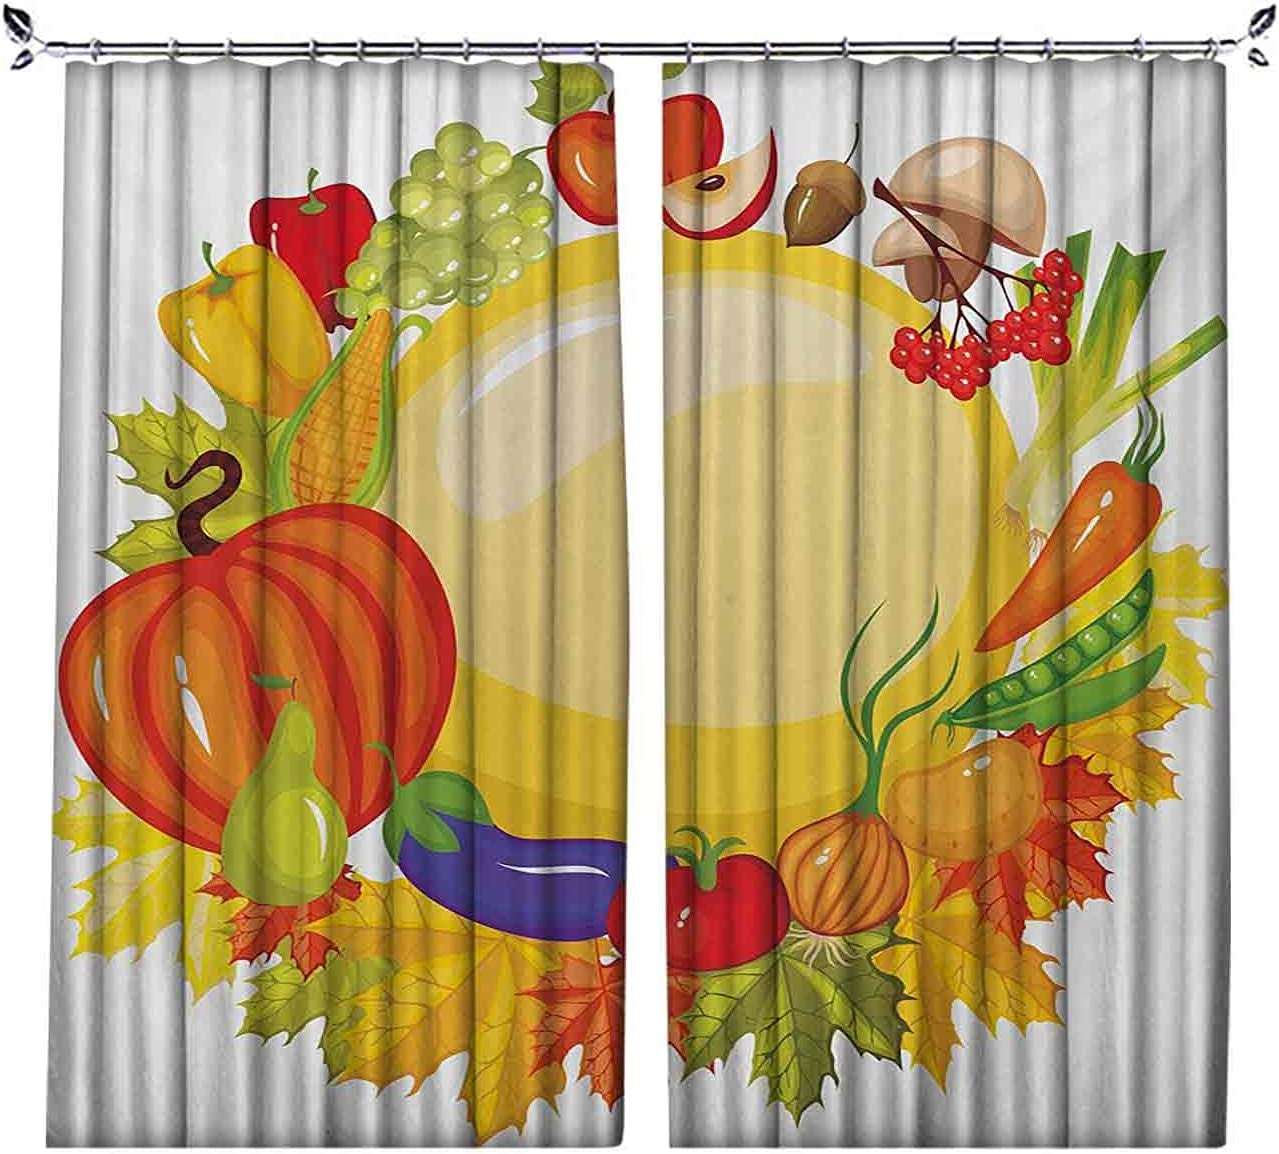 Pinch Pleat Cheap mail order sales Textured Harvest Curtains Products Whol from Safety and trust Garden